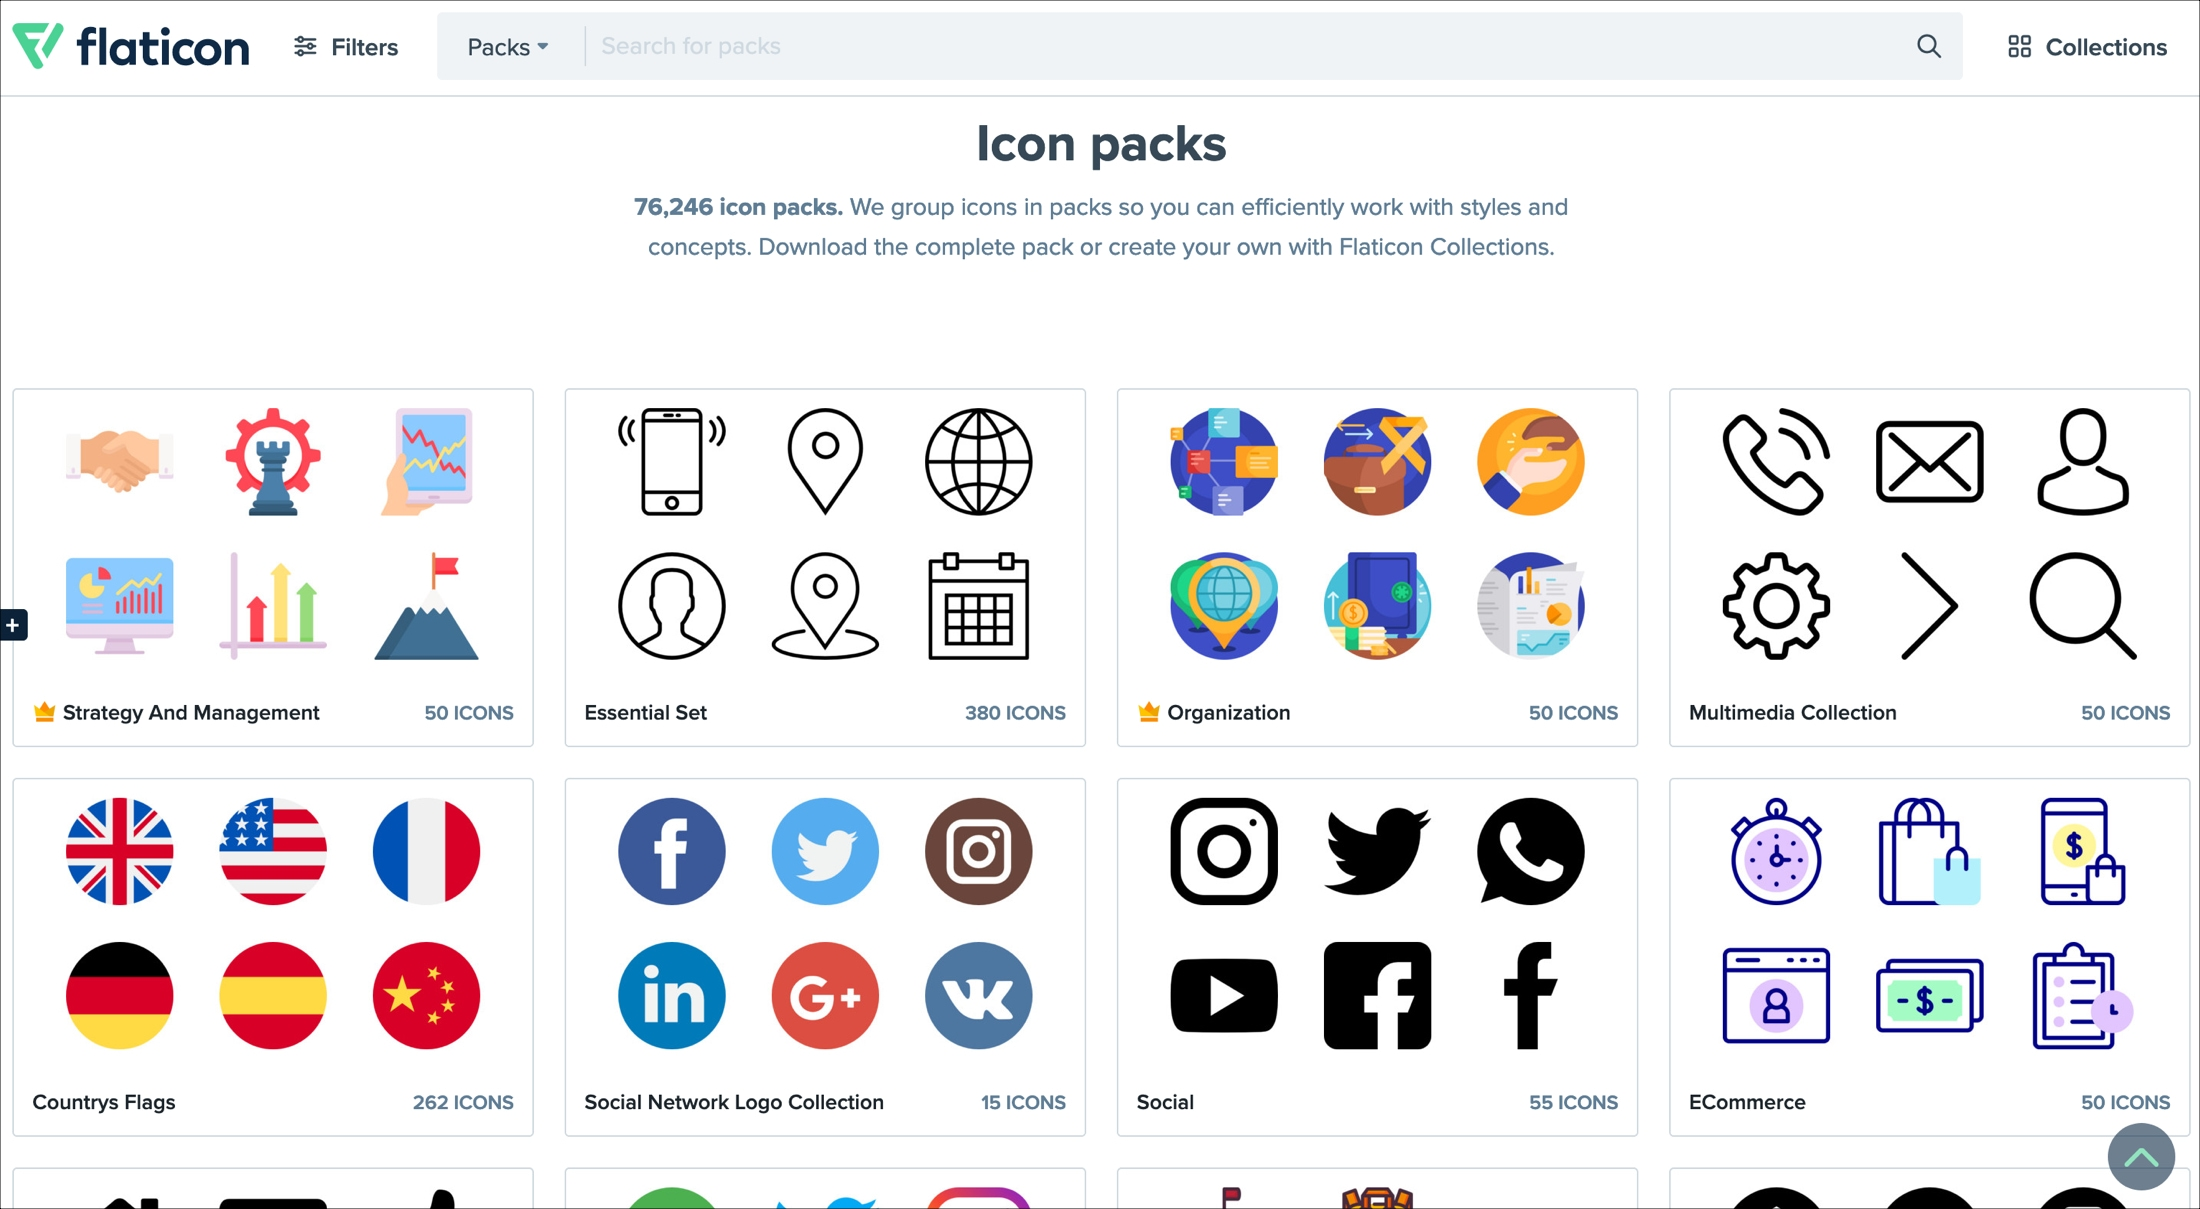 Flaticon website icon packs